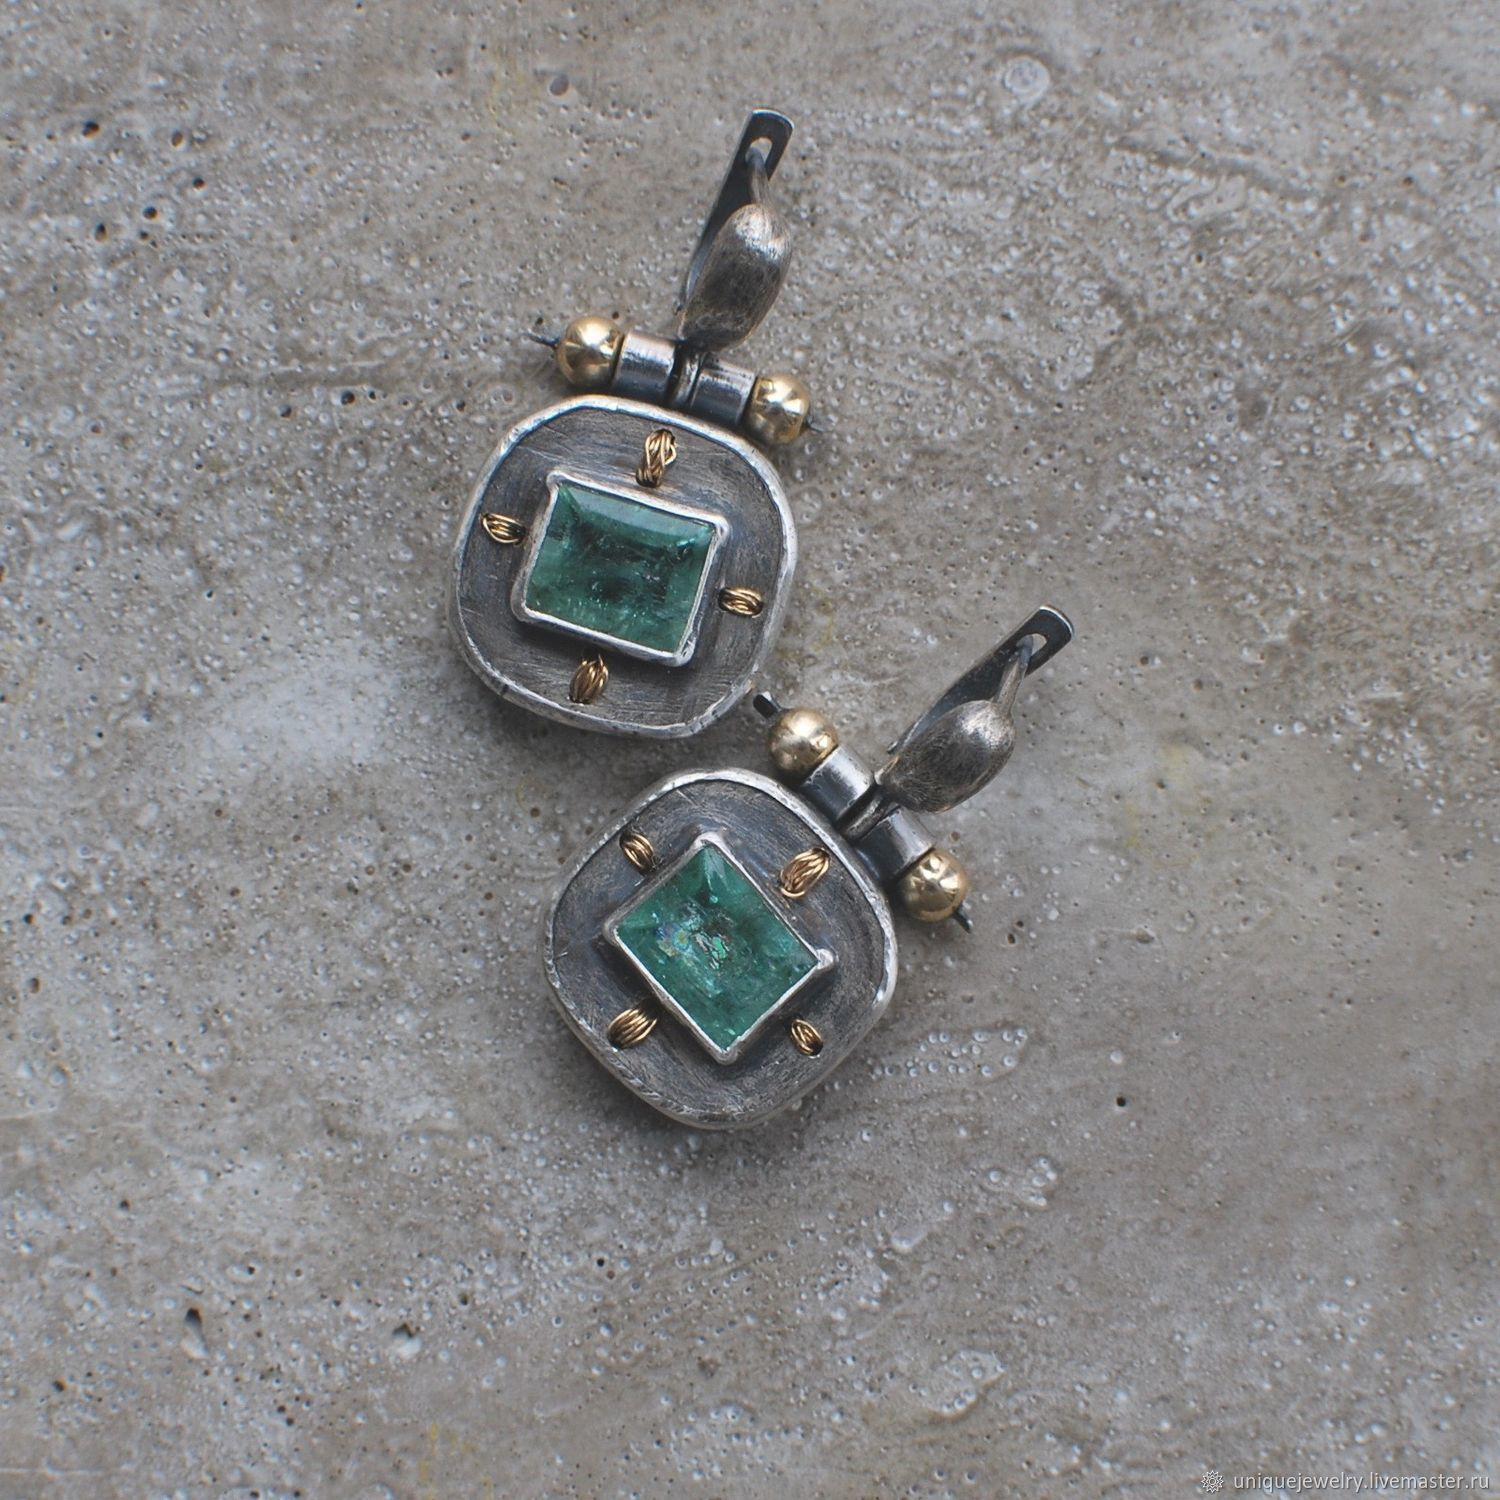 Earrings with emeralds, silver and goldfield, Earrings, Moscow,  Фото №1